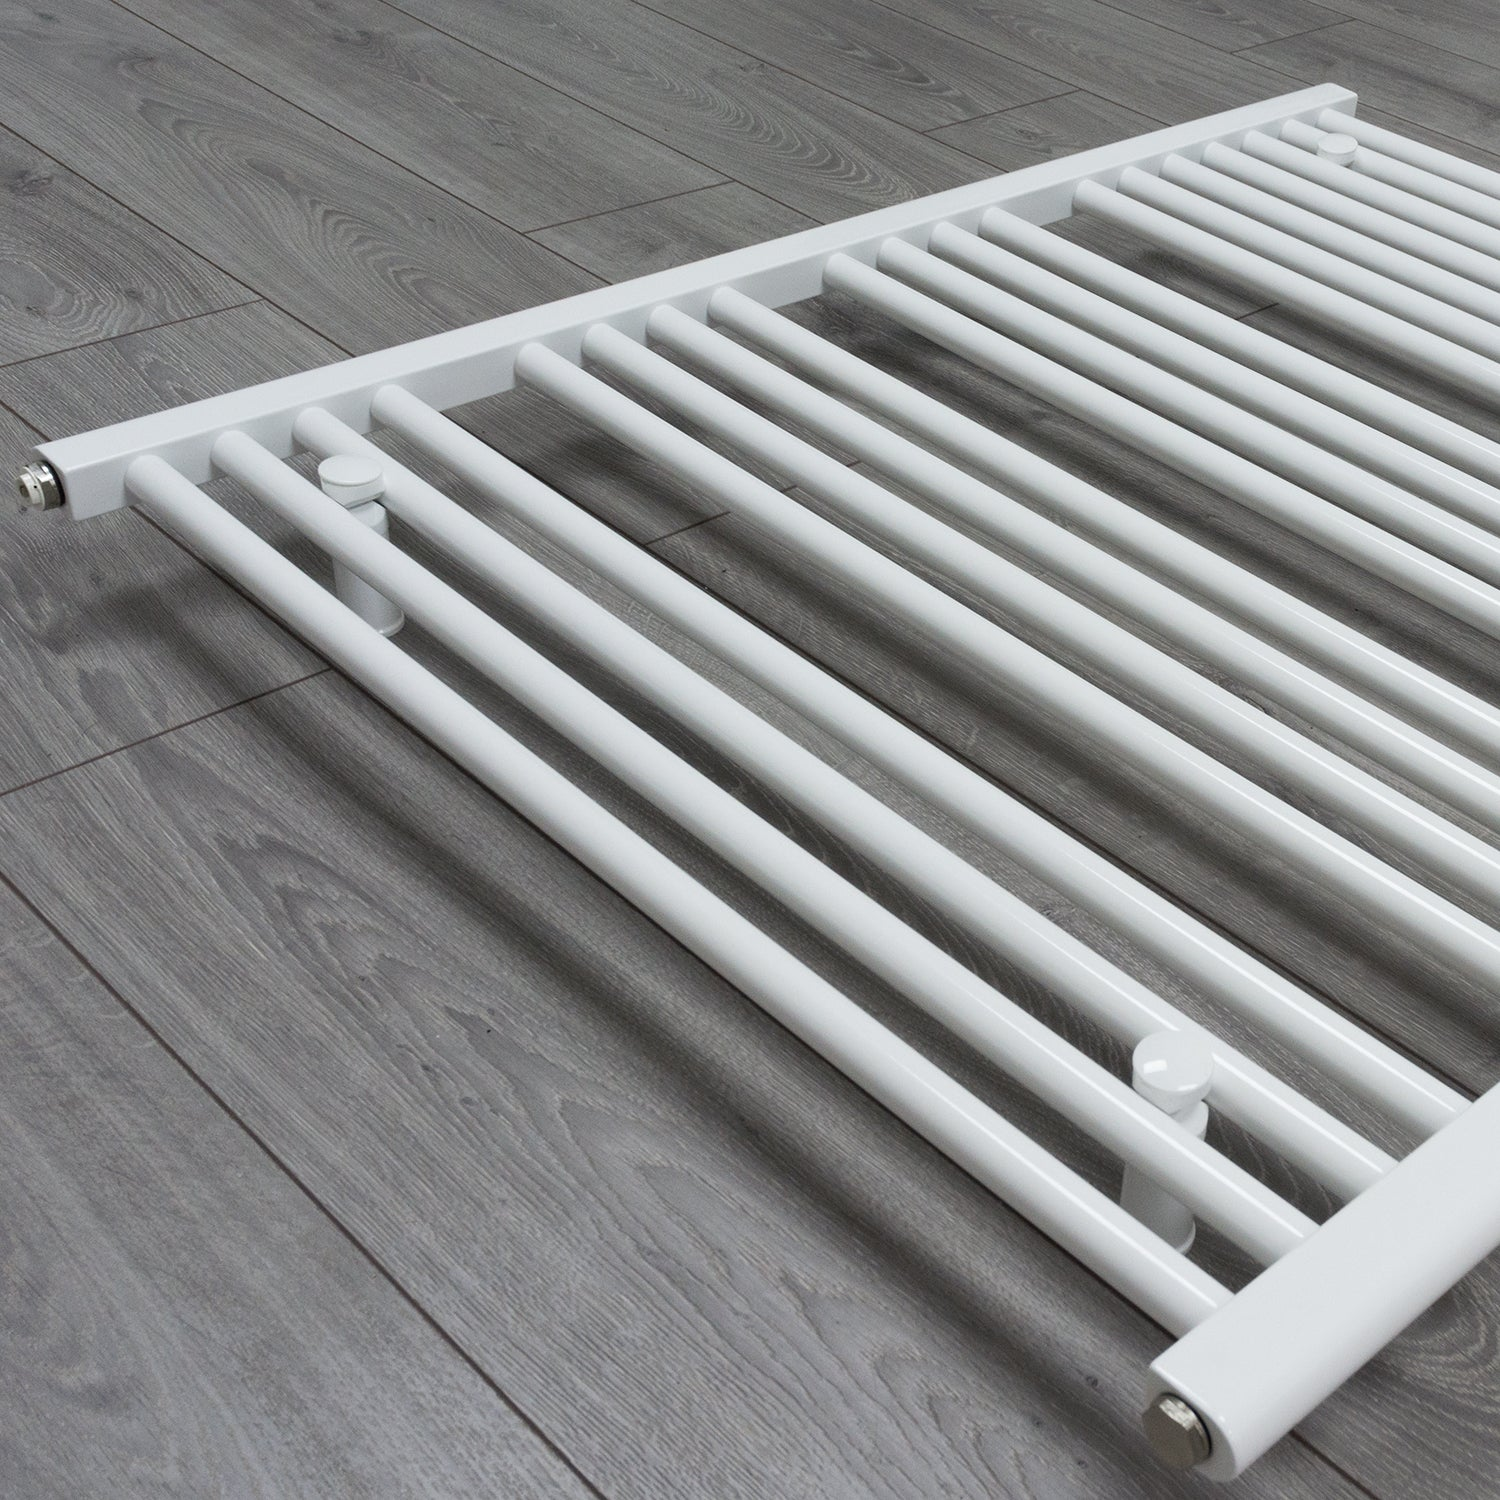 850mm x 400mm White Heated Towel Rail Radiator Close Up Image